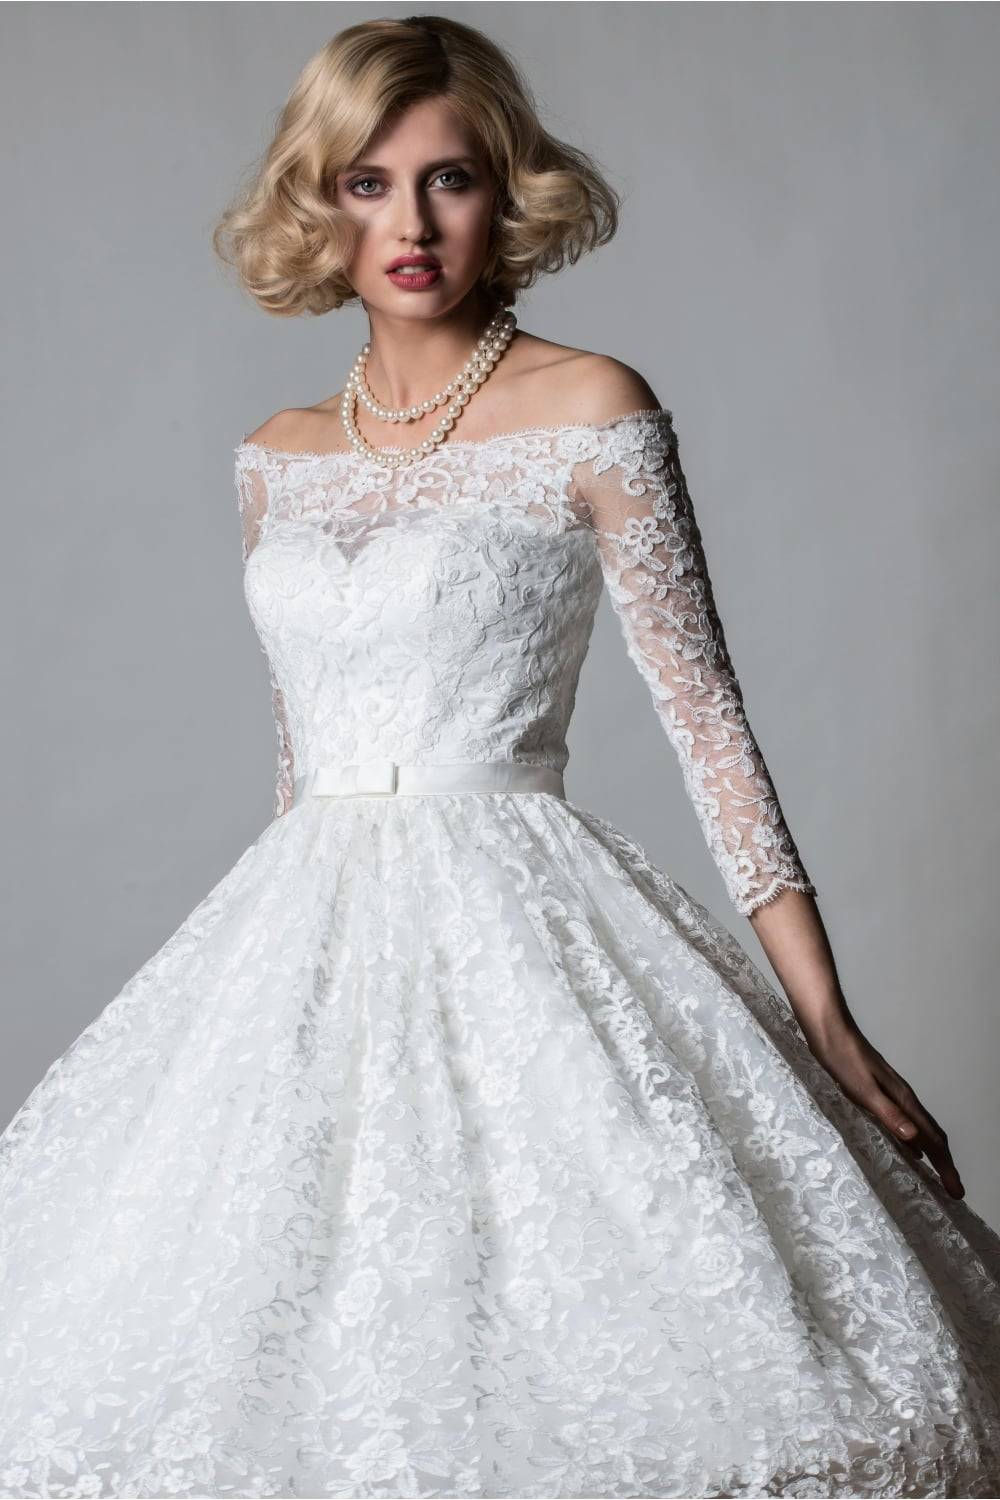 50s wedding dress lace